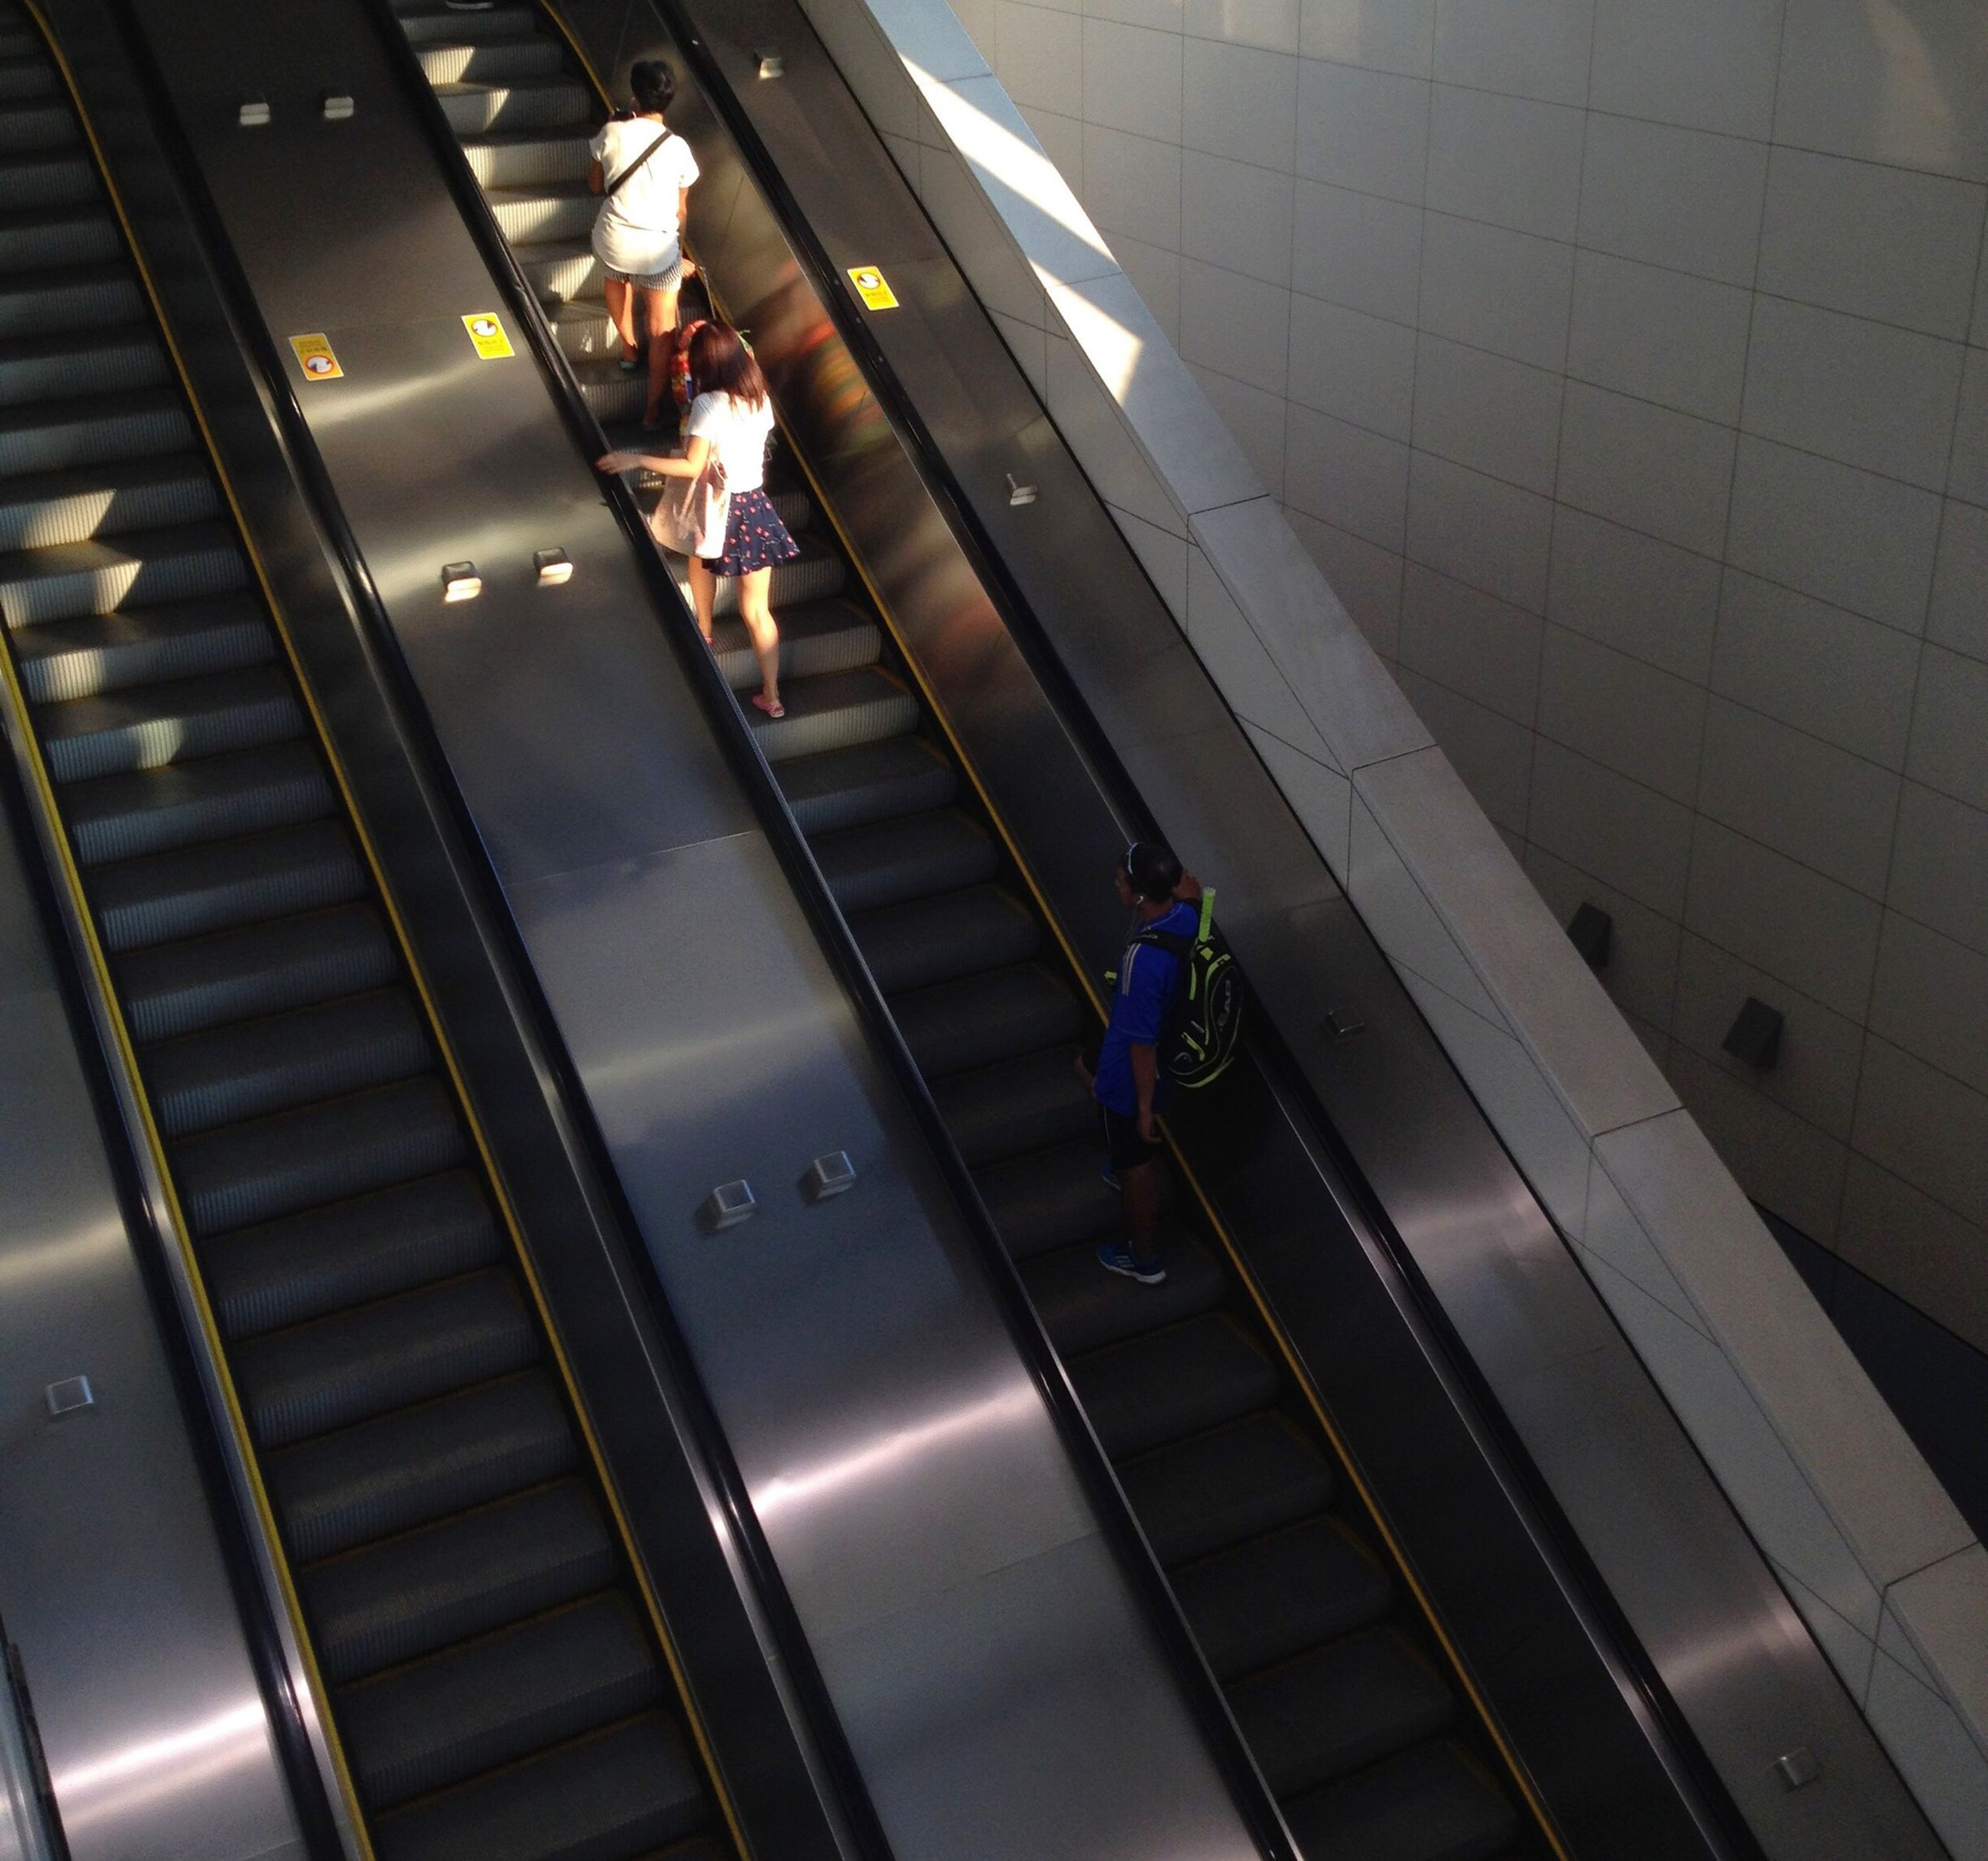 indoors, steps, steps and staircases, staircase, escalator, high angle view, lifestyles, men, railing, person, walking, leisure activity, moving down, full length, modern, the way forward, built structure, moving up